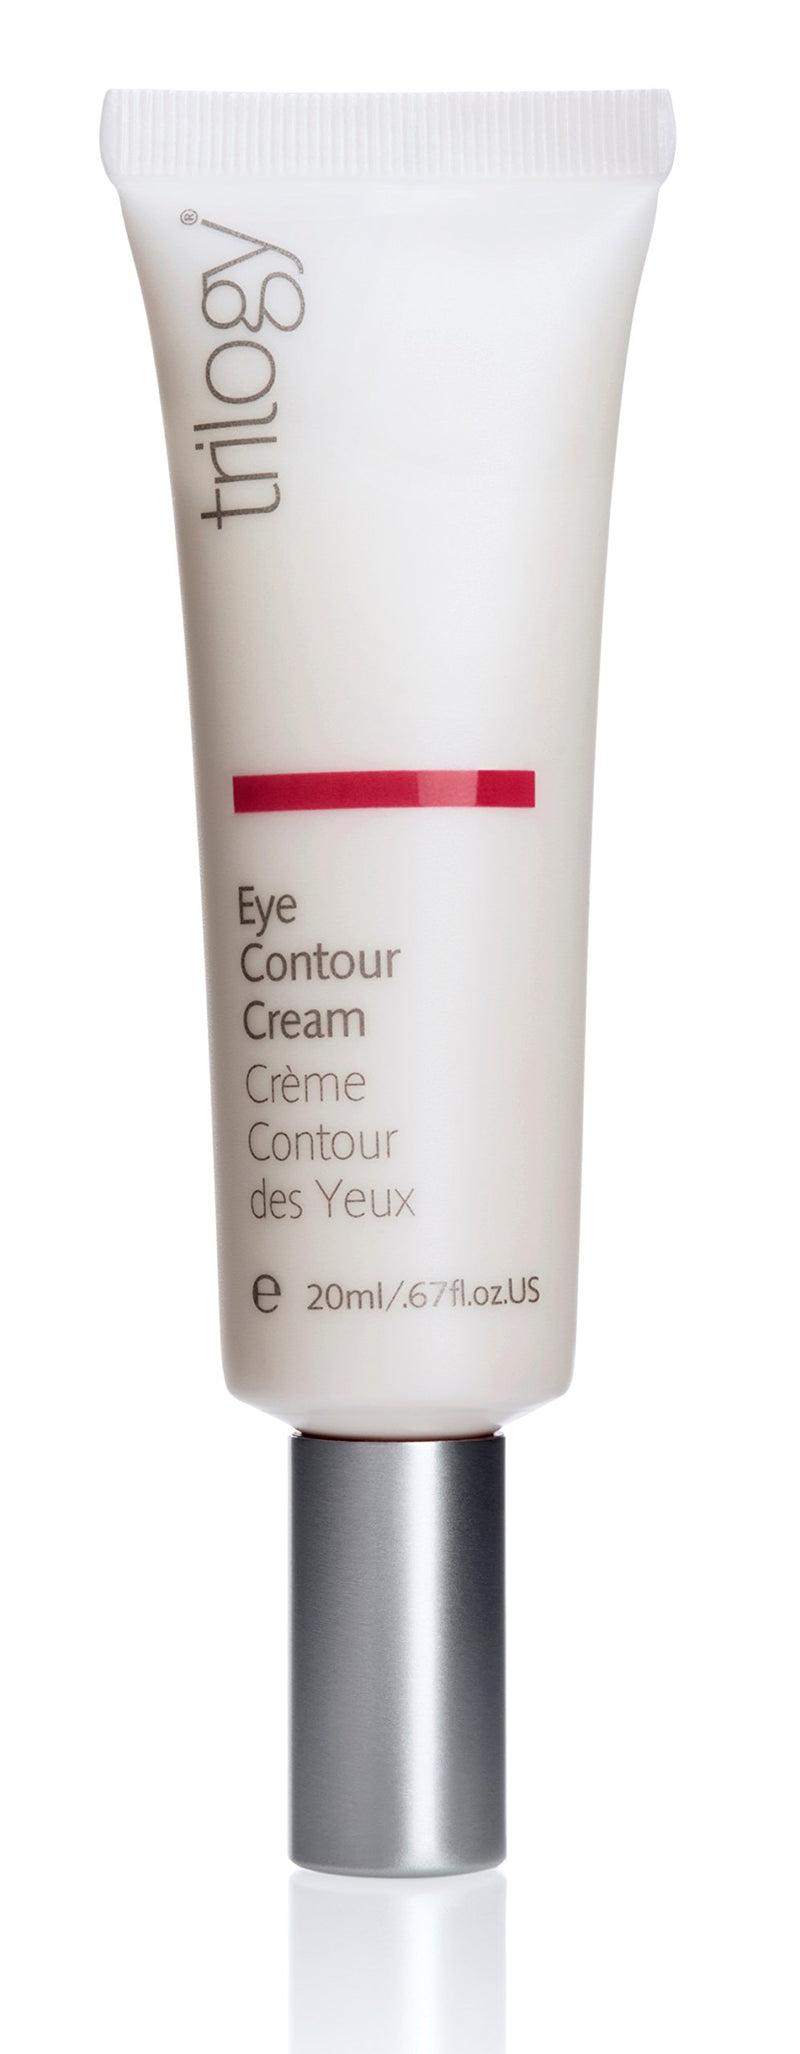 trilogy Eye Contour Cream 20 ml